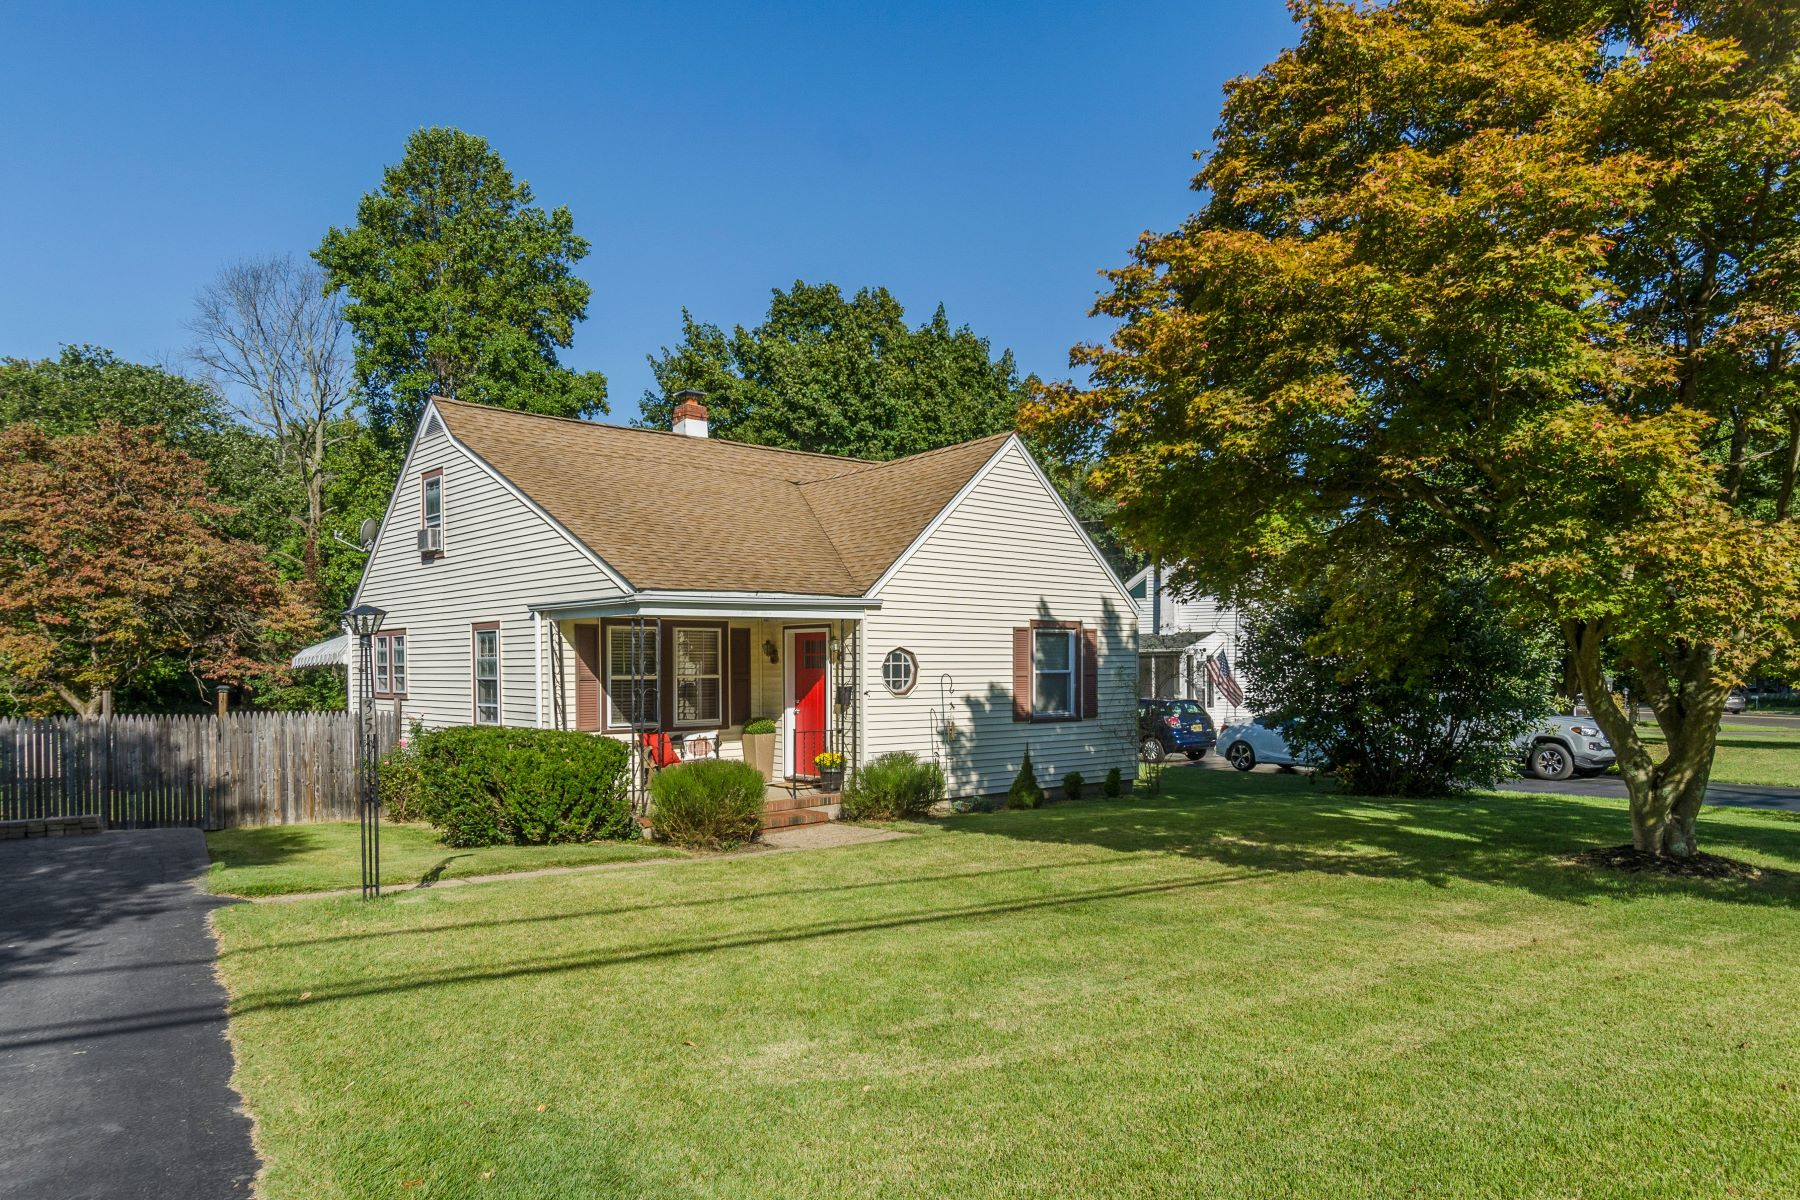 Single Family Homes for Sale at Charming Cape on spacious lot backing woodlands 35 Norcross Circle, Hamilton Township, New Jersey 08619 United States